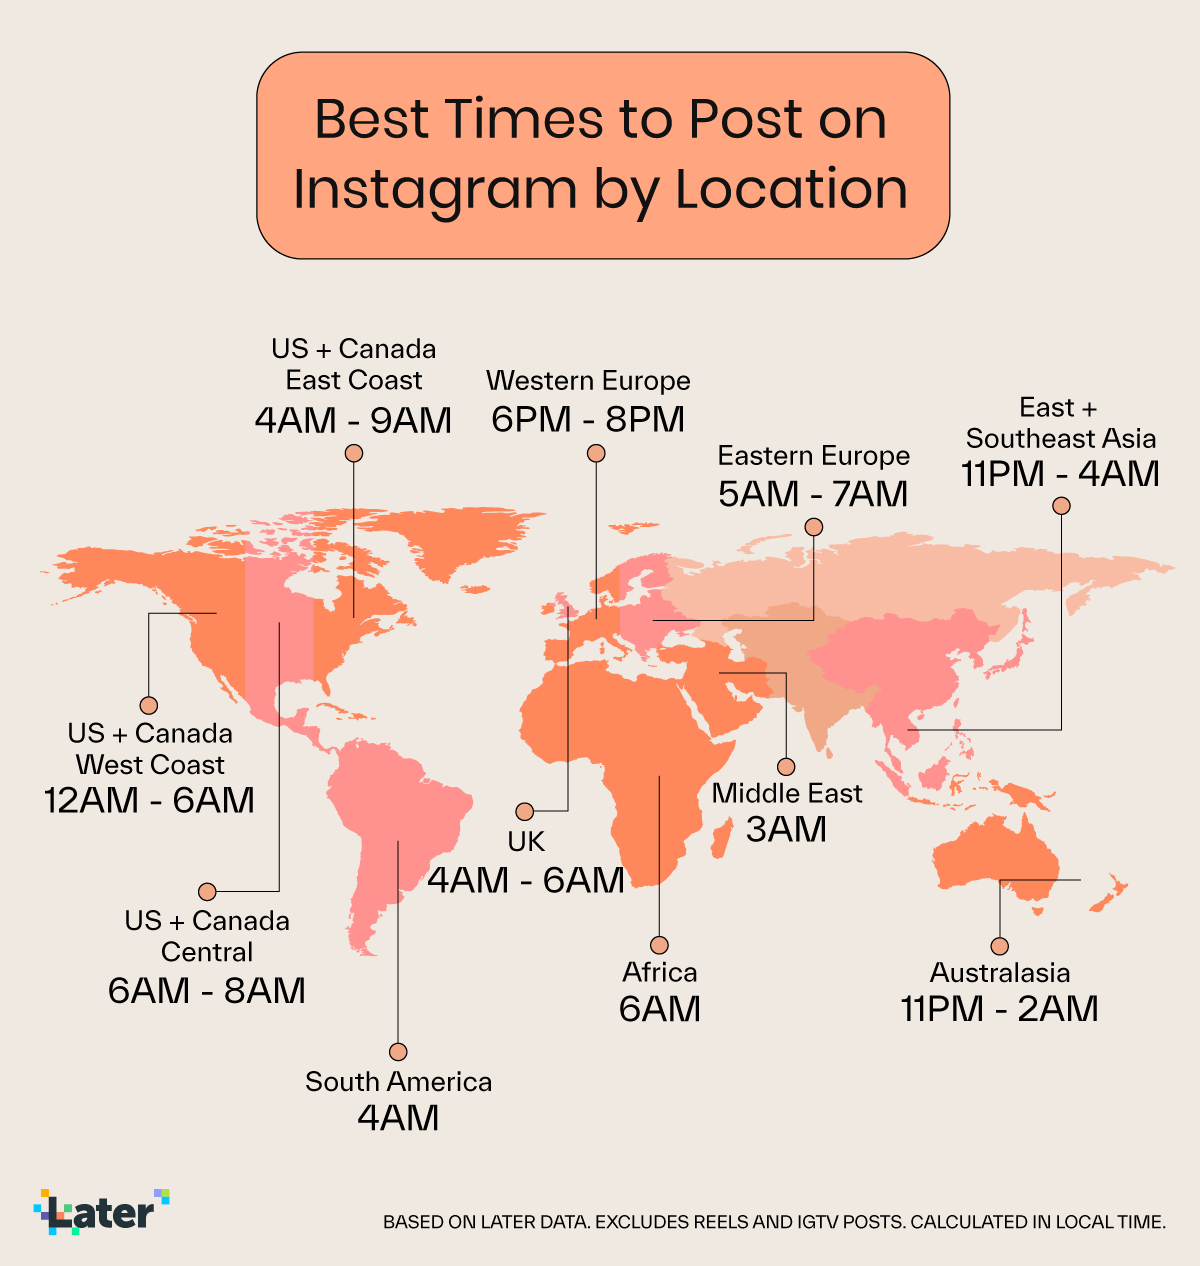 best time to post by location